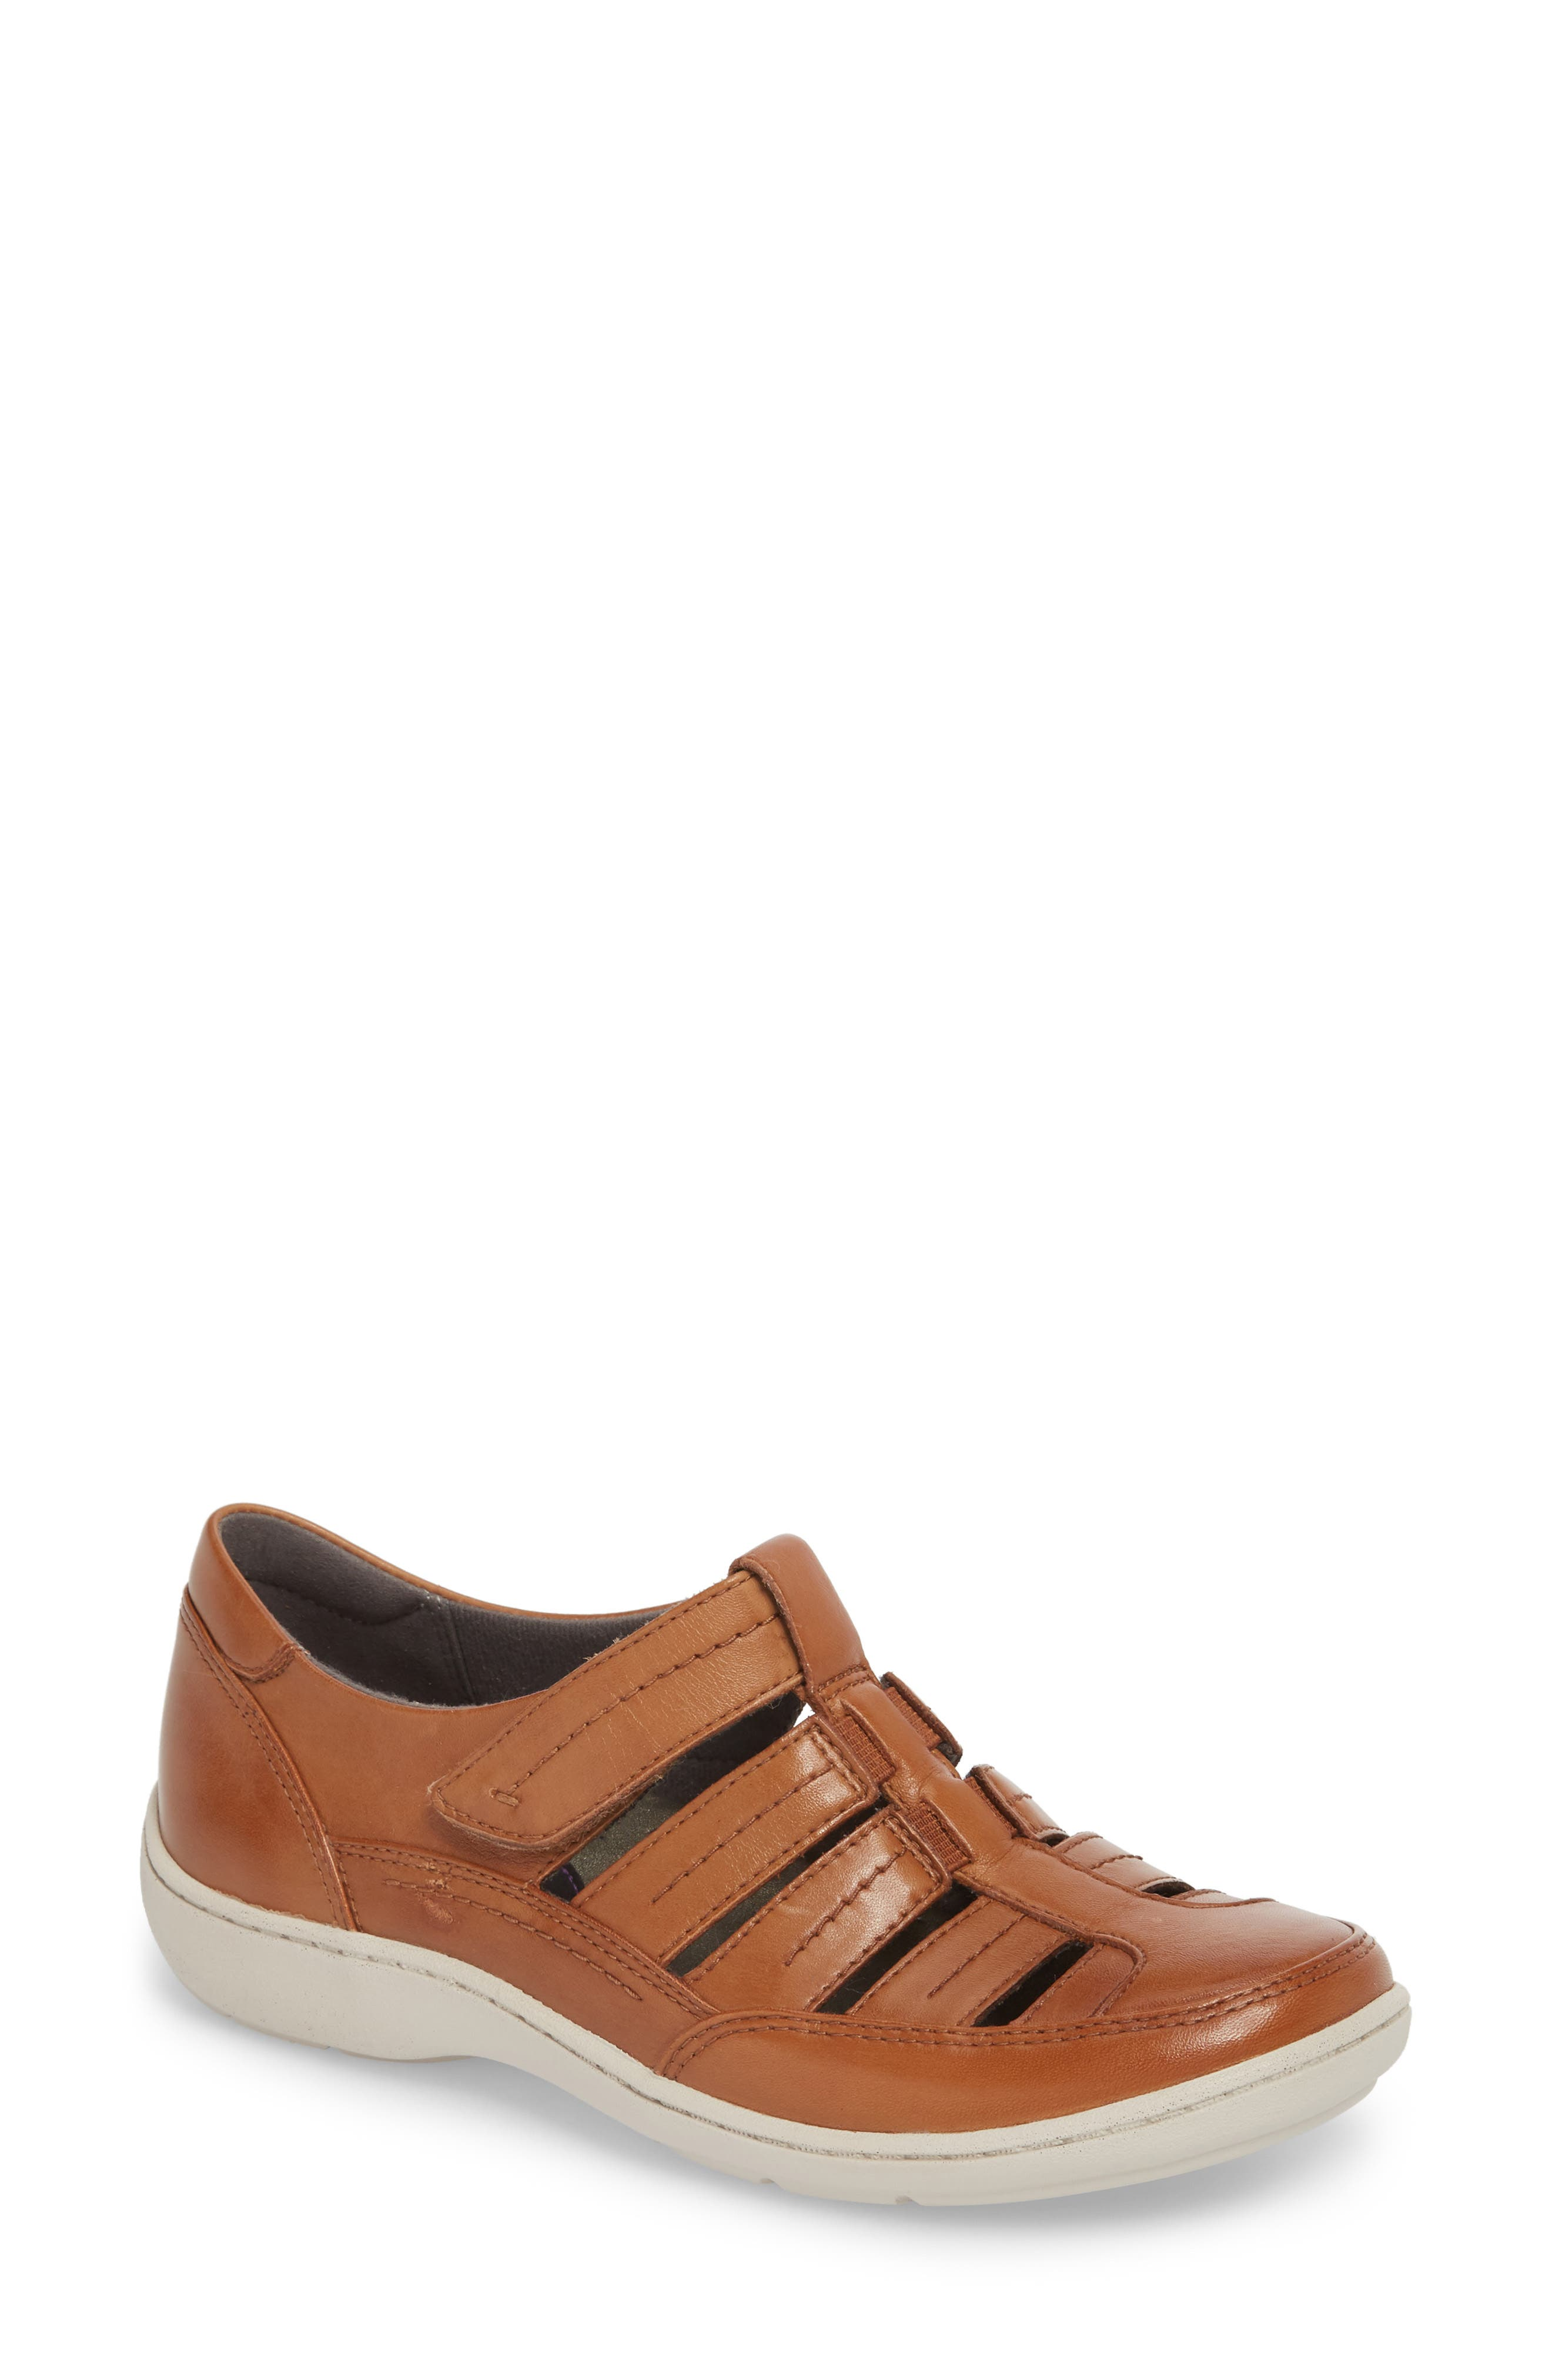 Beaumont Sneaker,                         Main,                         color, ALPACA LEATHER